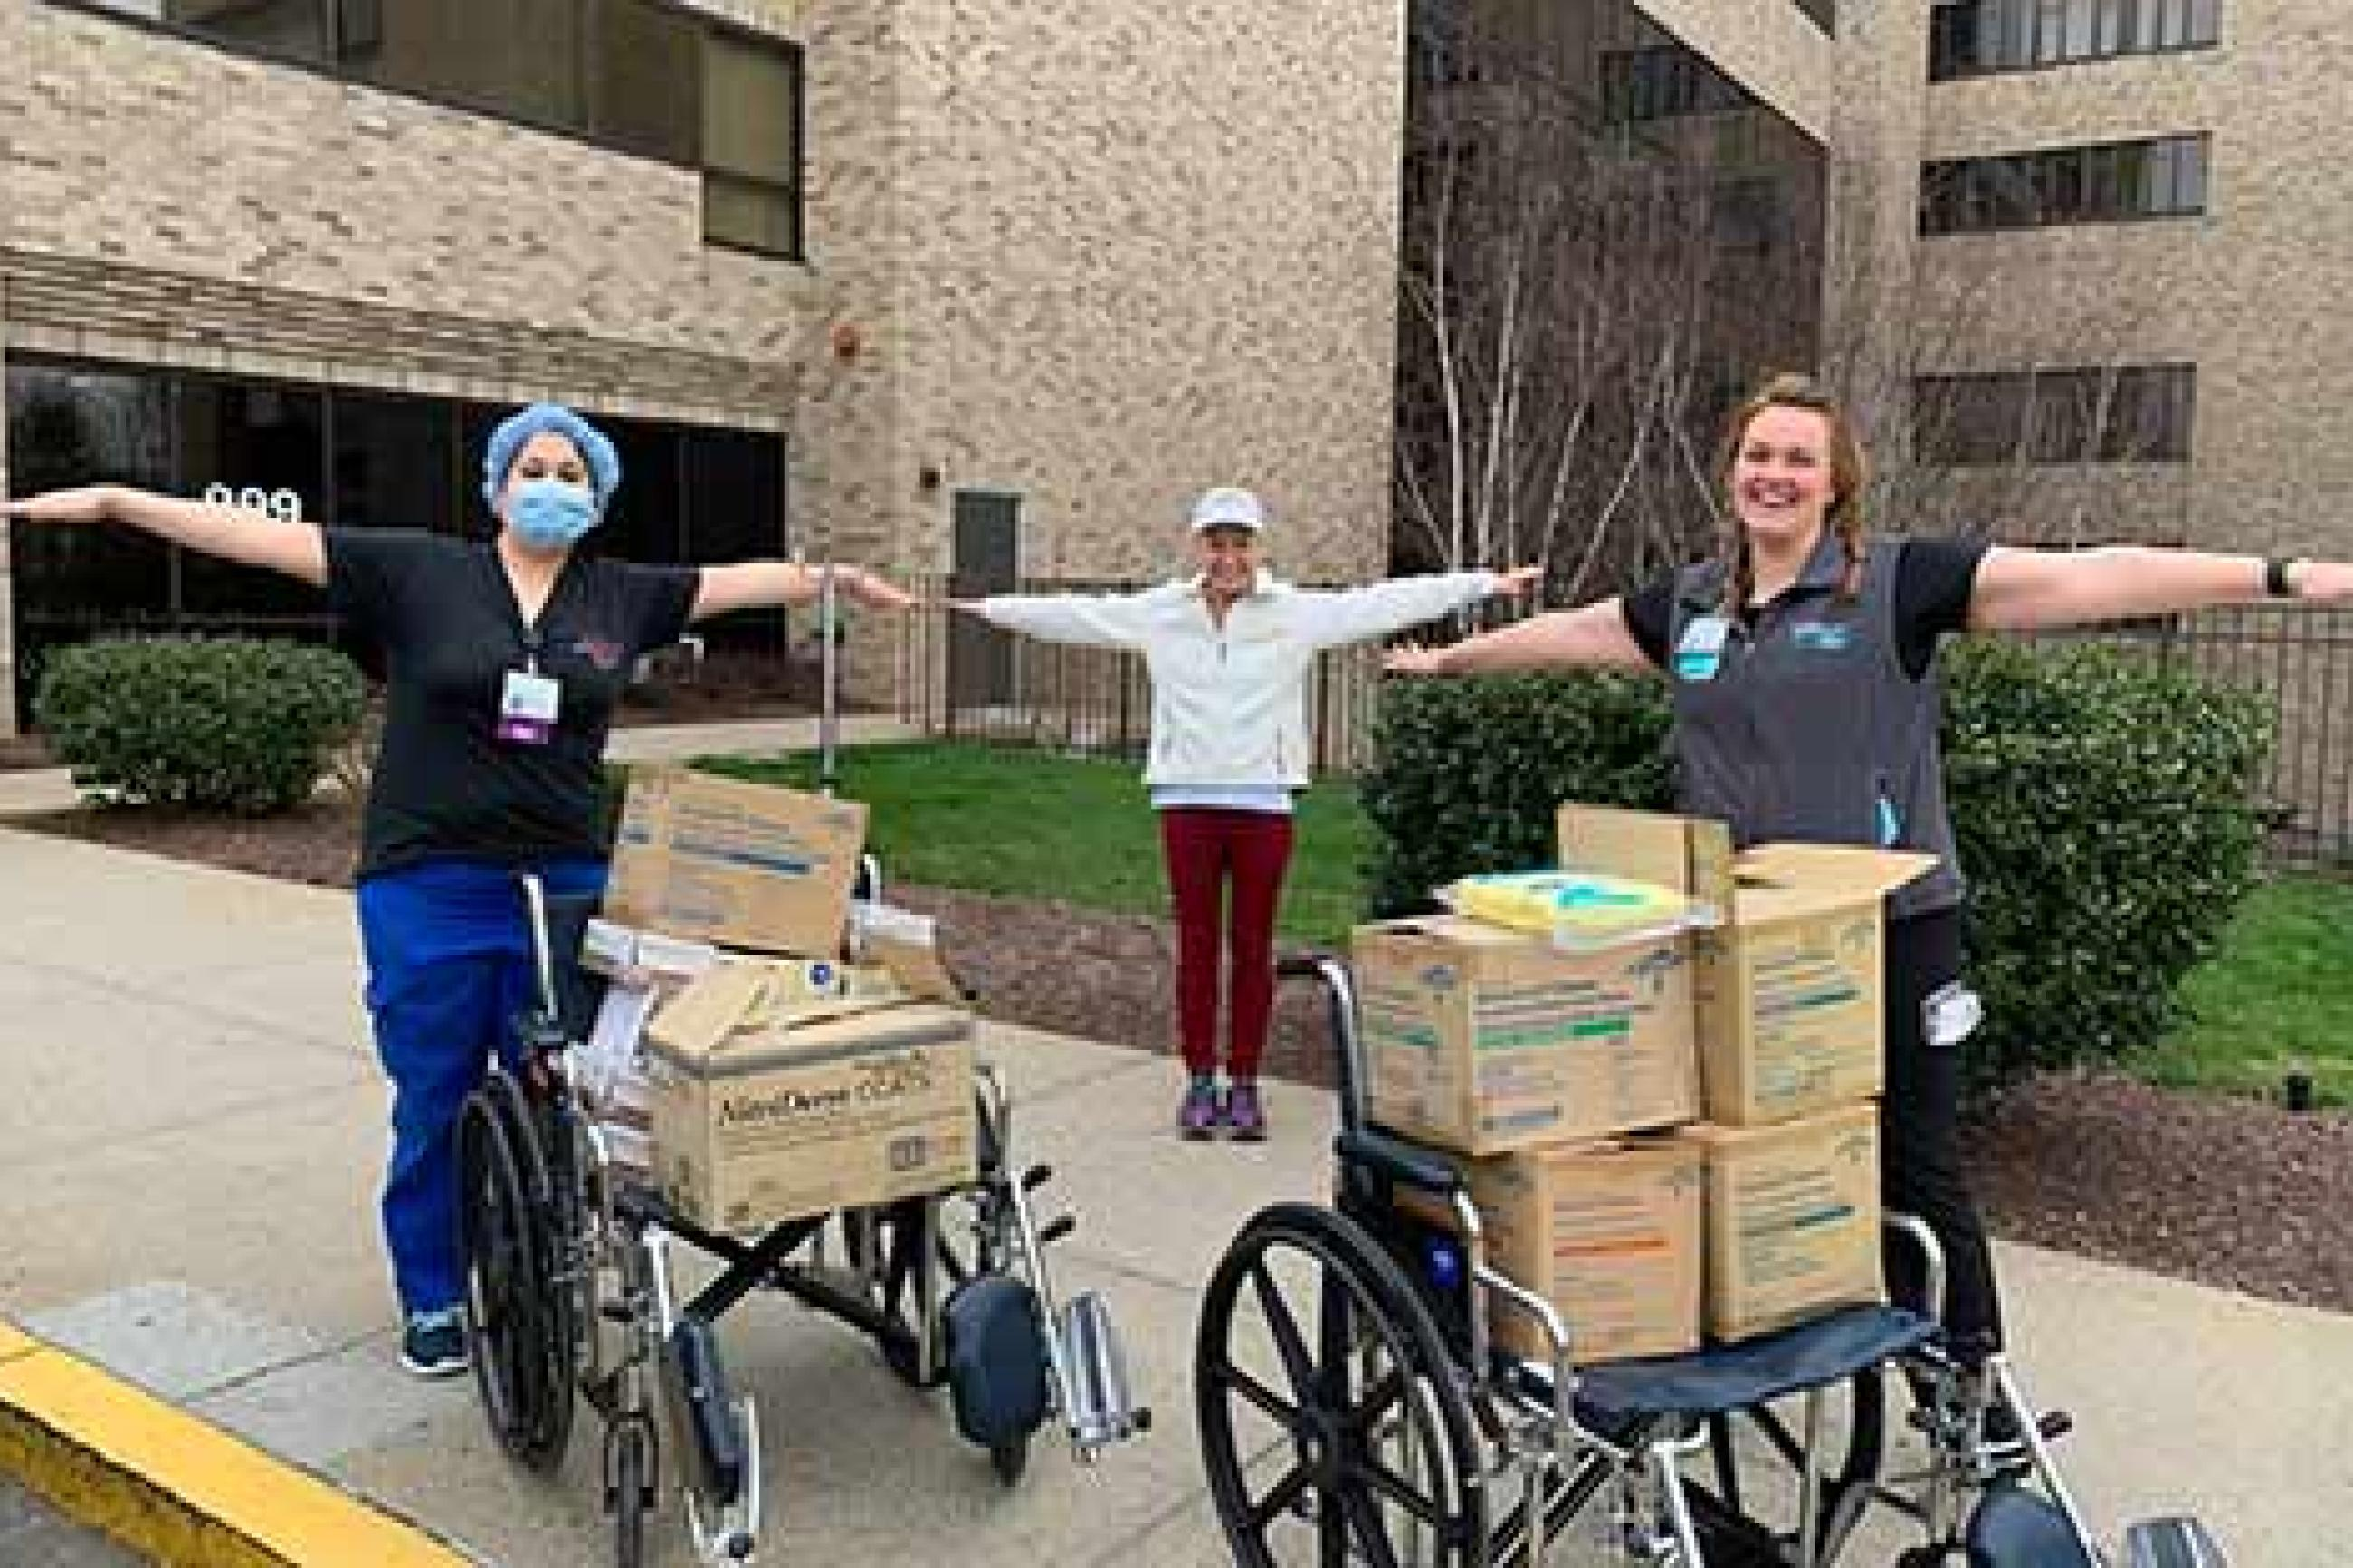 Springfield College Donates 50,000 Pairs of Gloves to Mercy Hospital